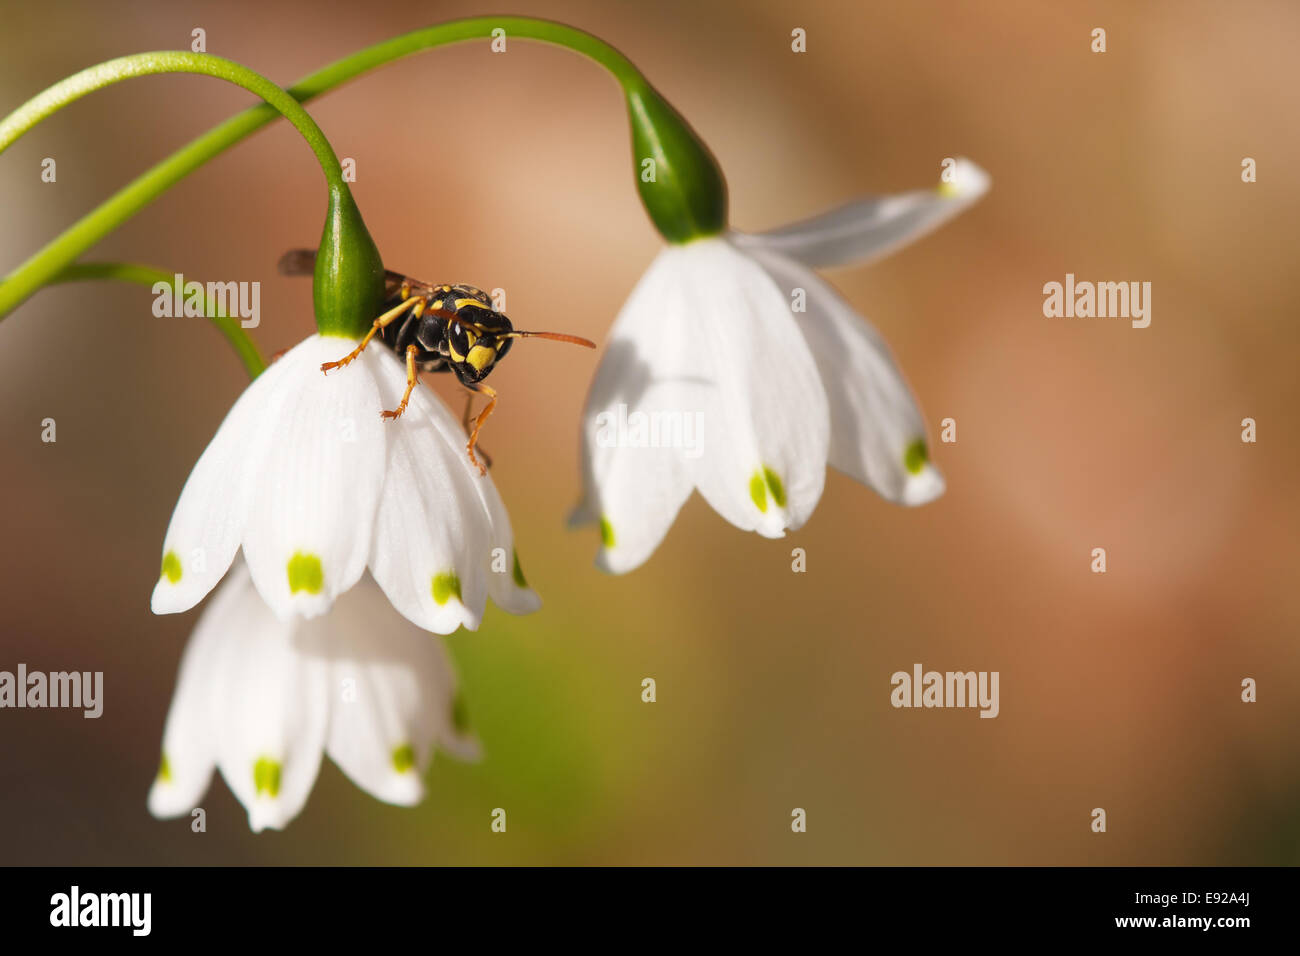 wasp on sprin snowflake blossom - Stock Image